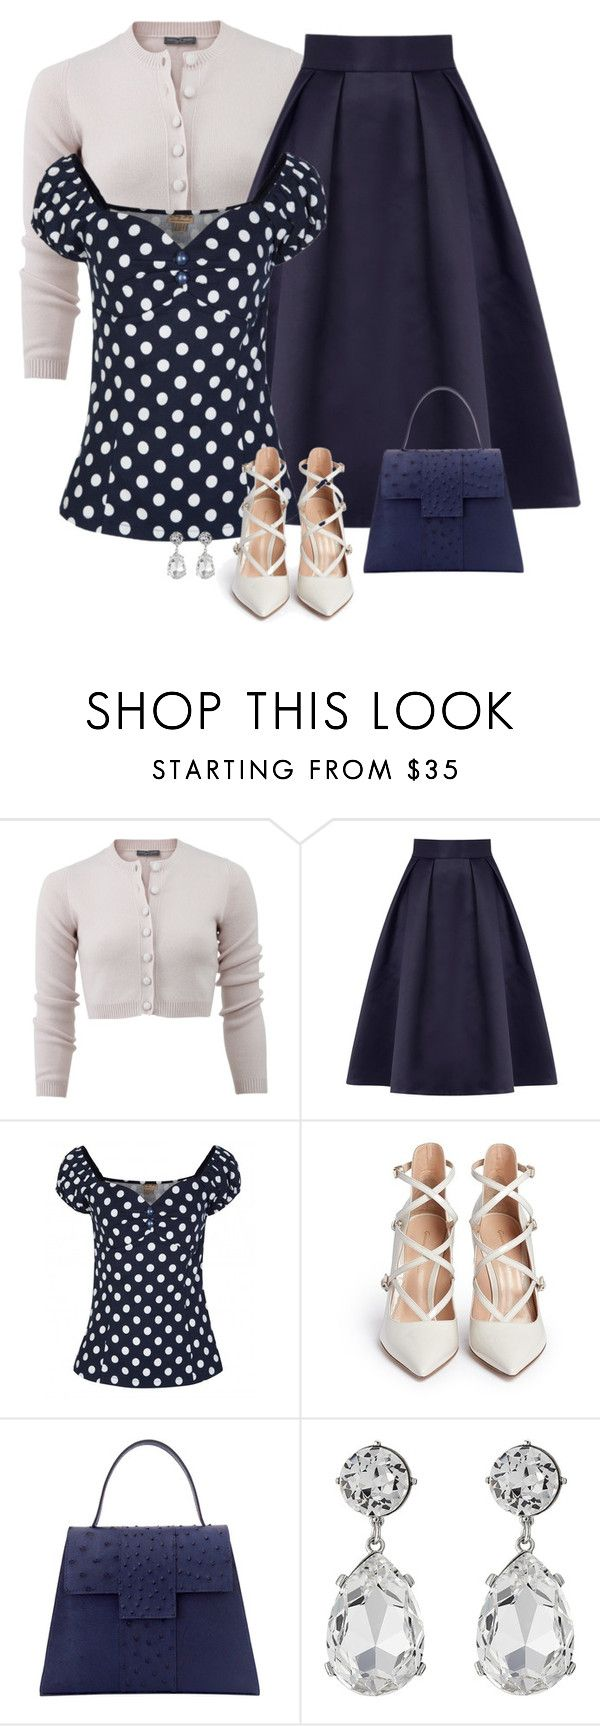 """""""retro look"""" by divacrafts ❤ liked on Polyvore featuring Alexander McQueen, Coast, Gianvito Rossi, Kenneth Jay Lane and Original"""